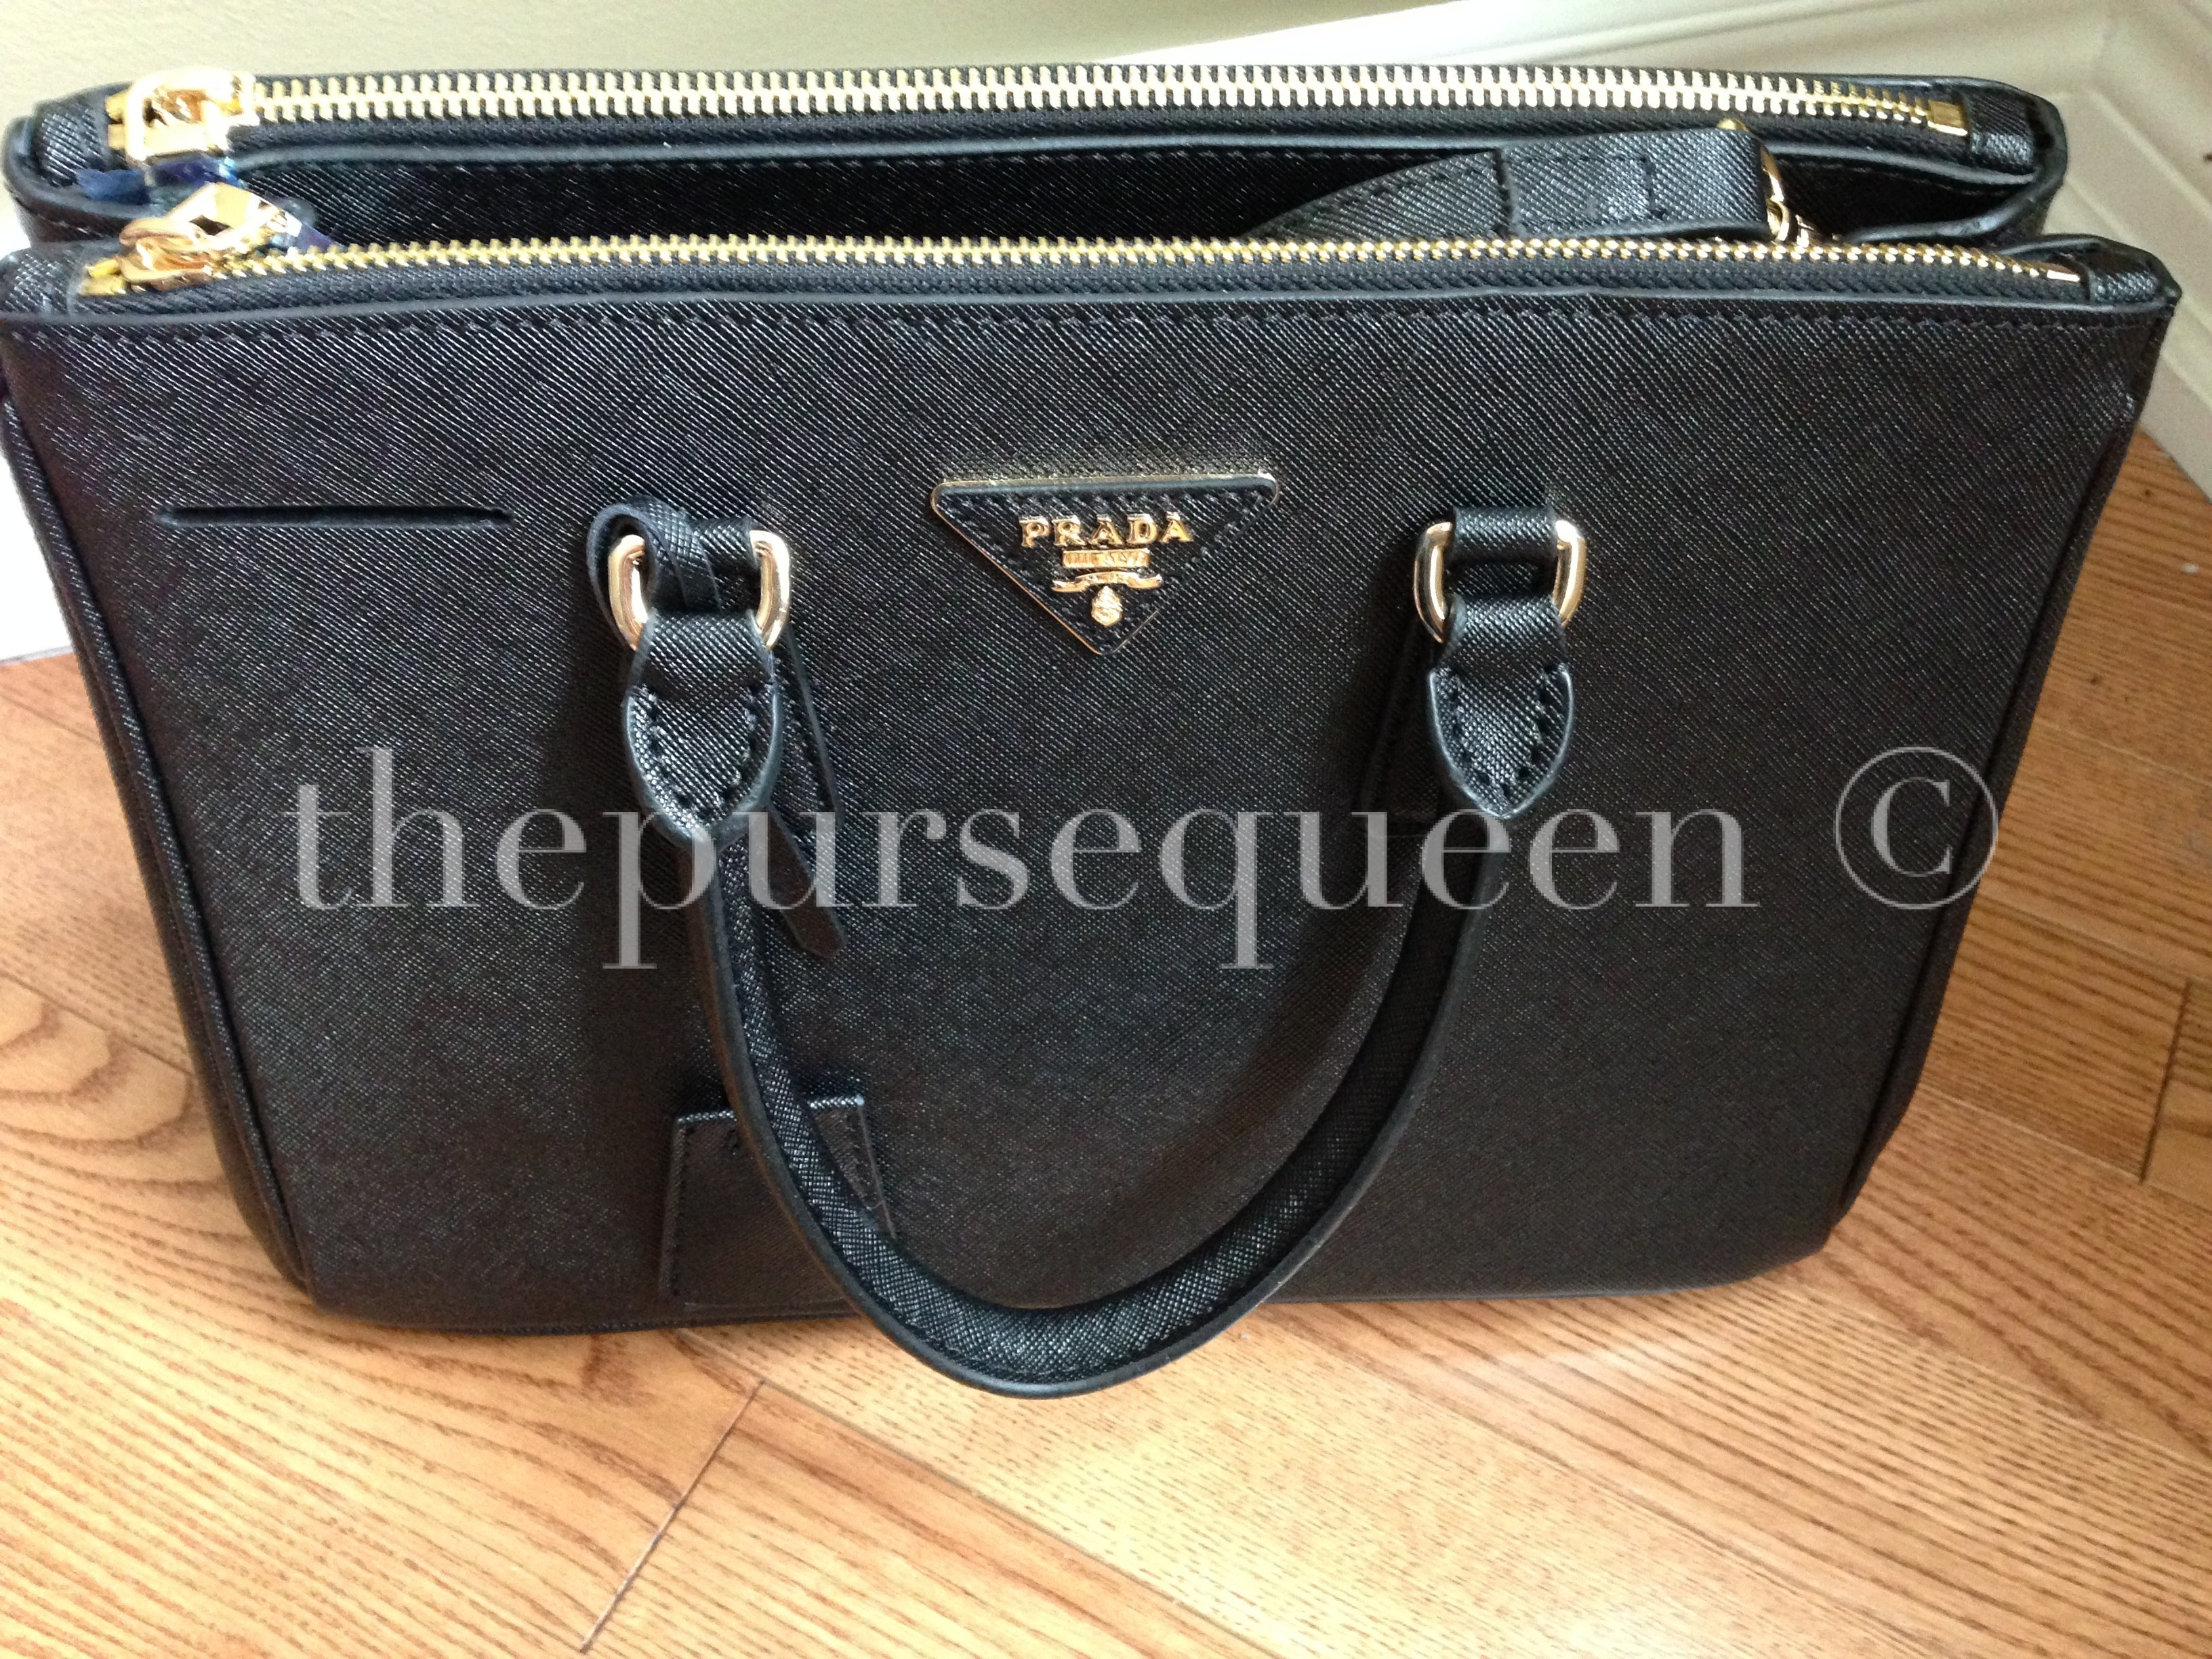 d6afb05ec3 Prada Archives - Authentic   Replica Handbag Reviews by The Purse Queen